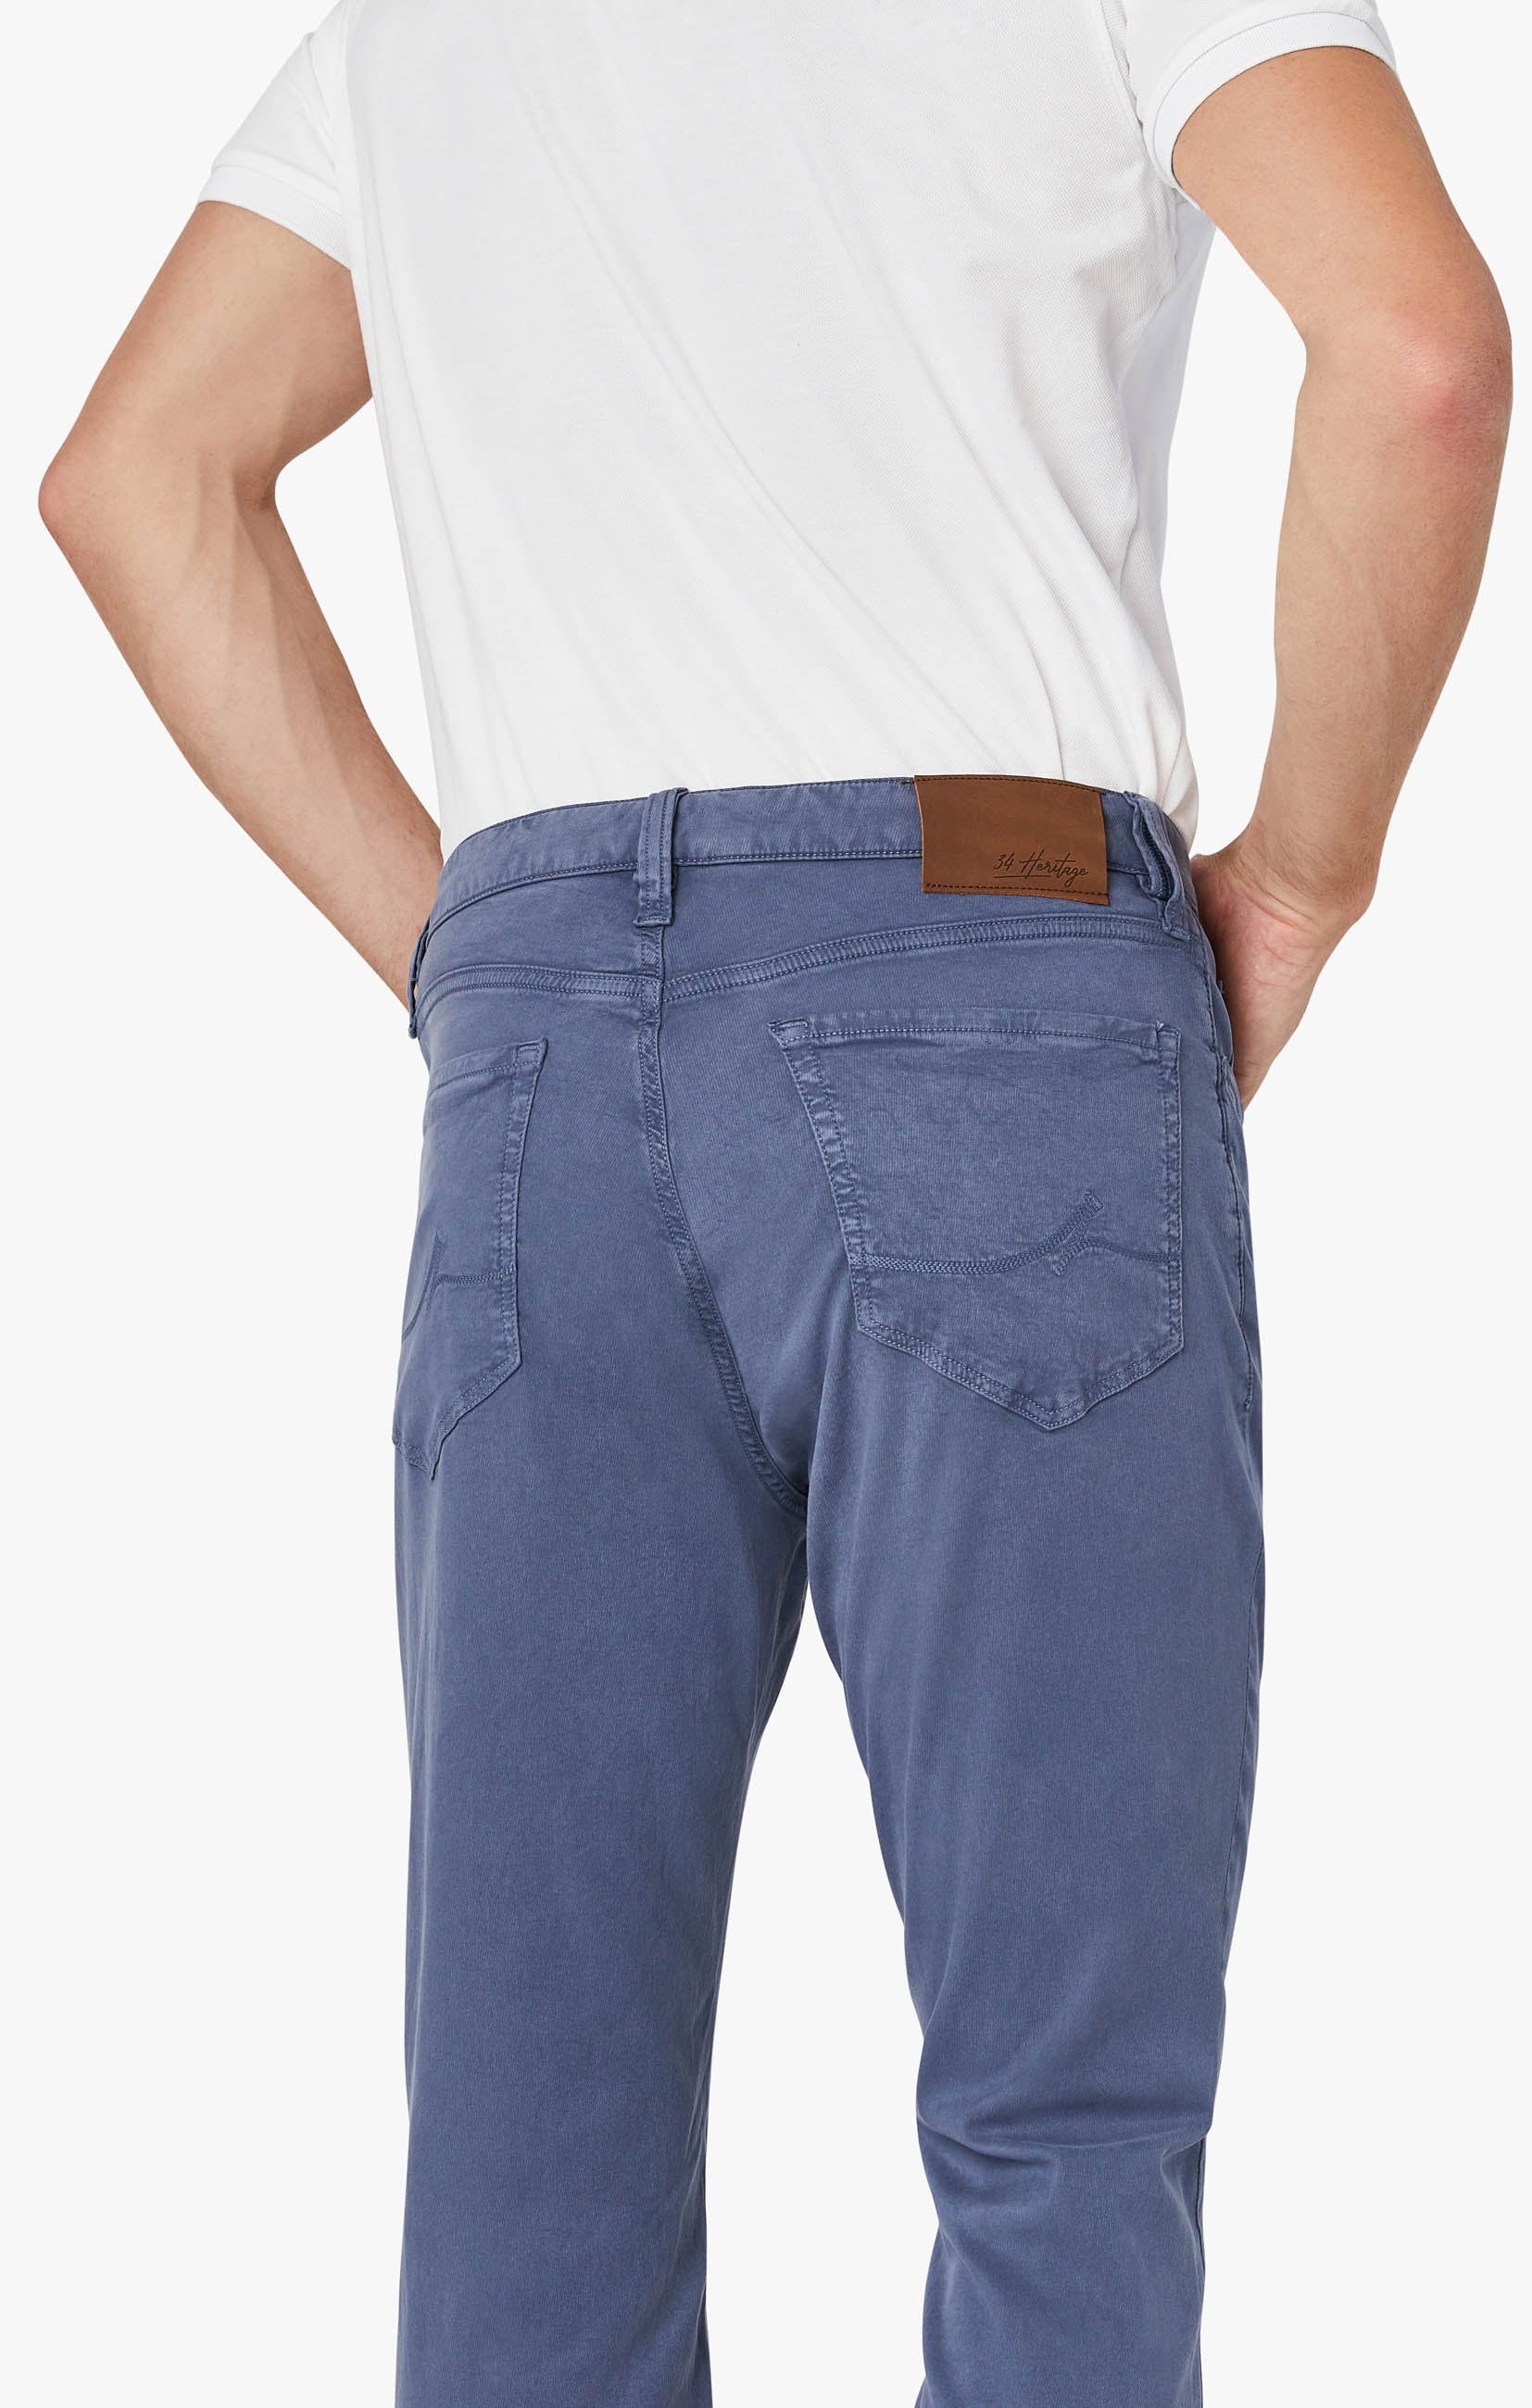 Courage Straight Leg Pants In Horizon Soft Touch Image 6